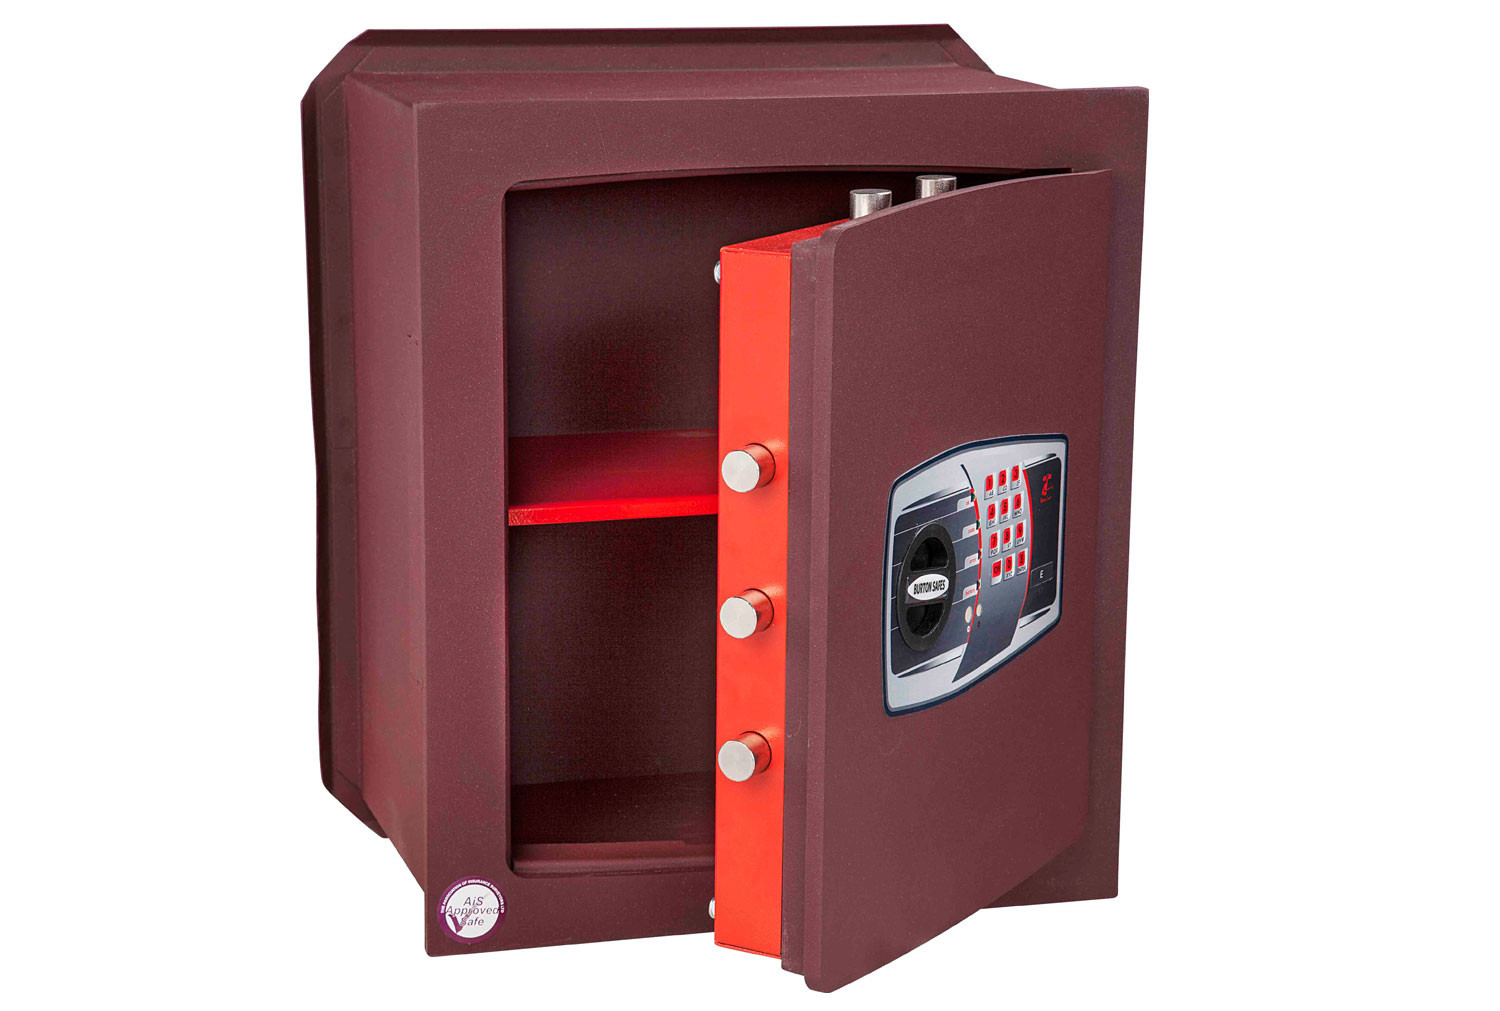 Burton Unica Wall Safe Size 3 With Electronic Lock (36ltrs)